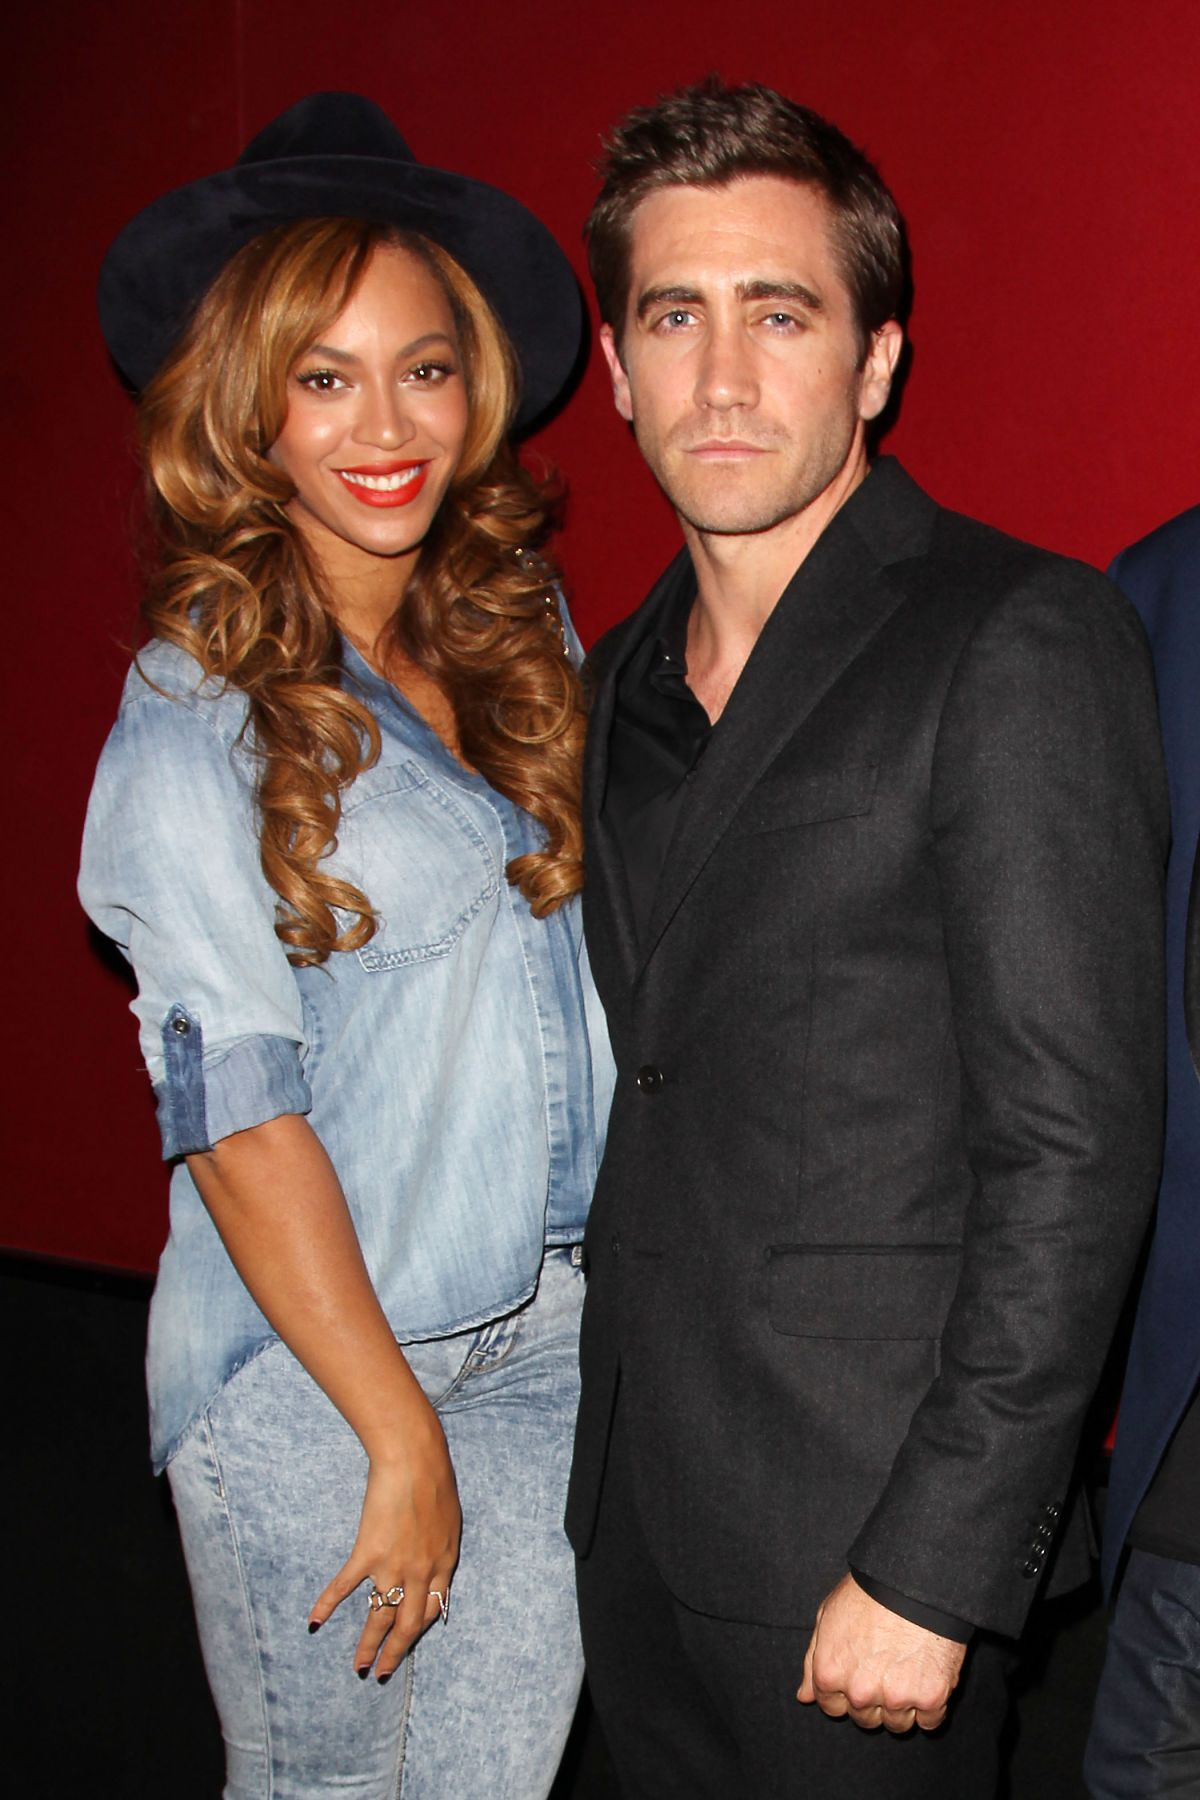 BEYONCE at Nightcrawler Premiere in New York